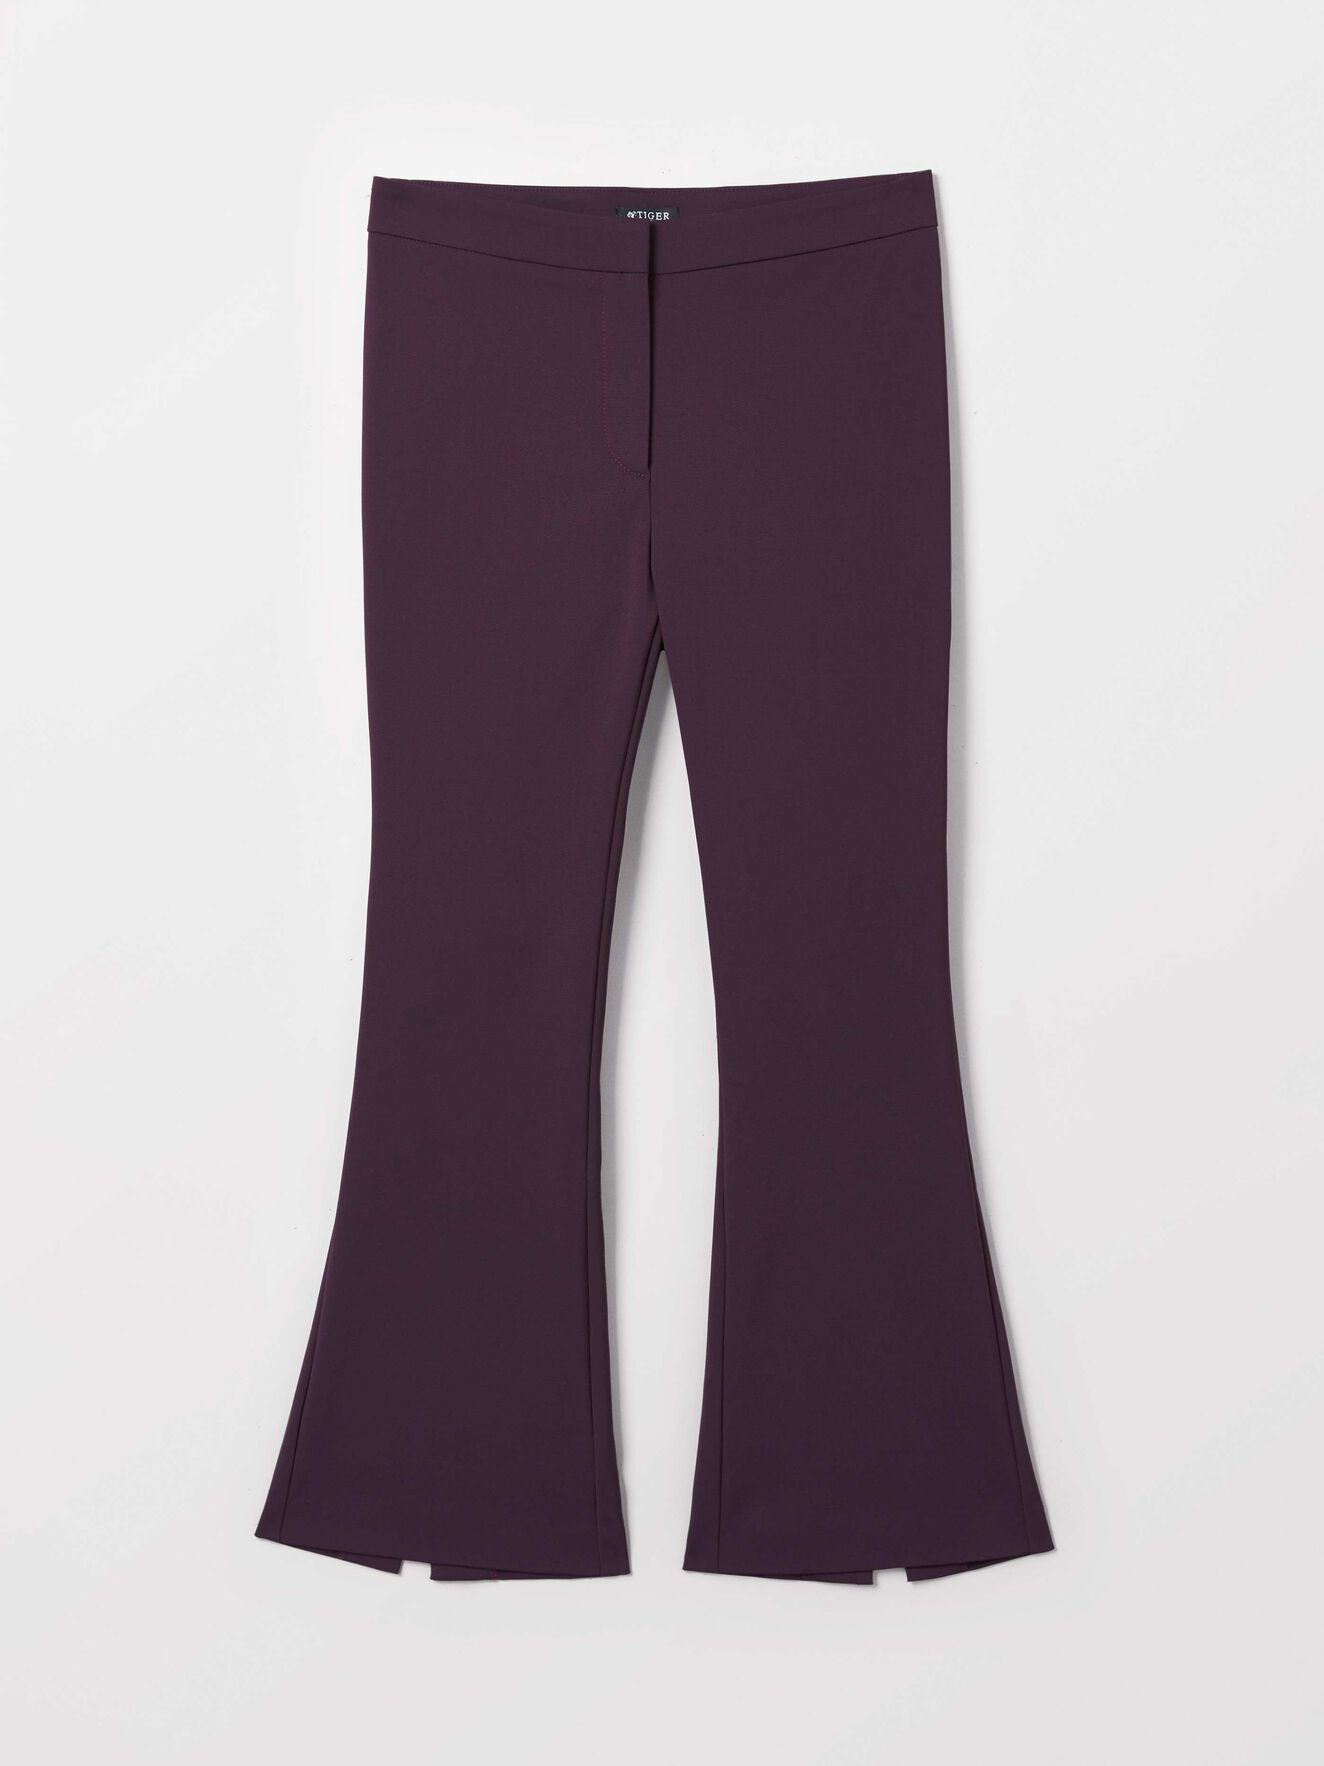 Noora Trousers in Juicy Plum from Tiger of Sweden